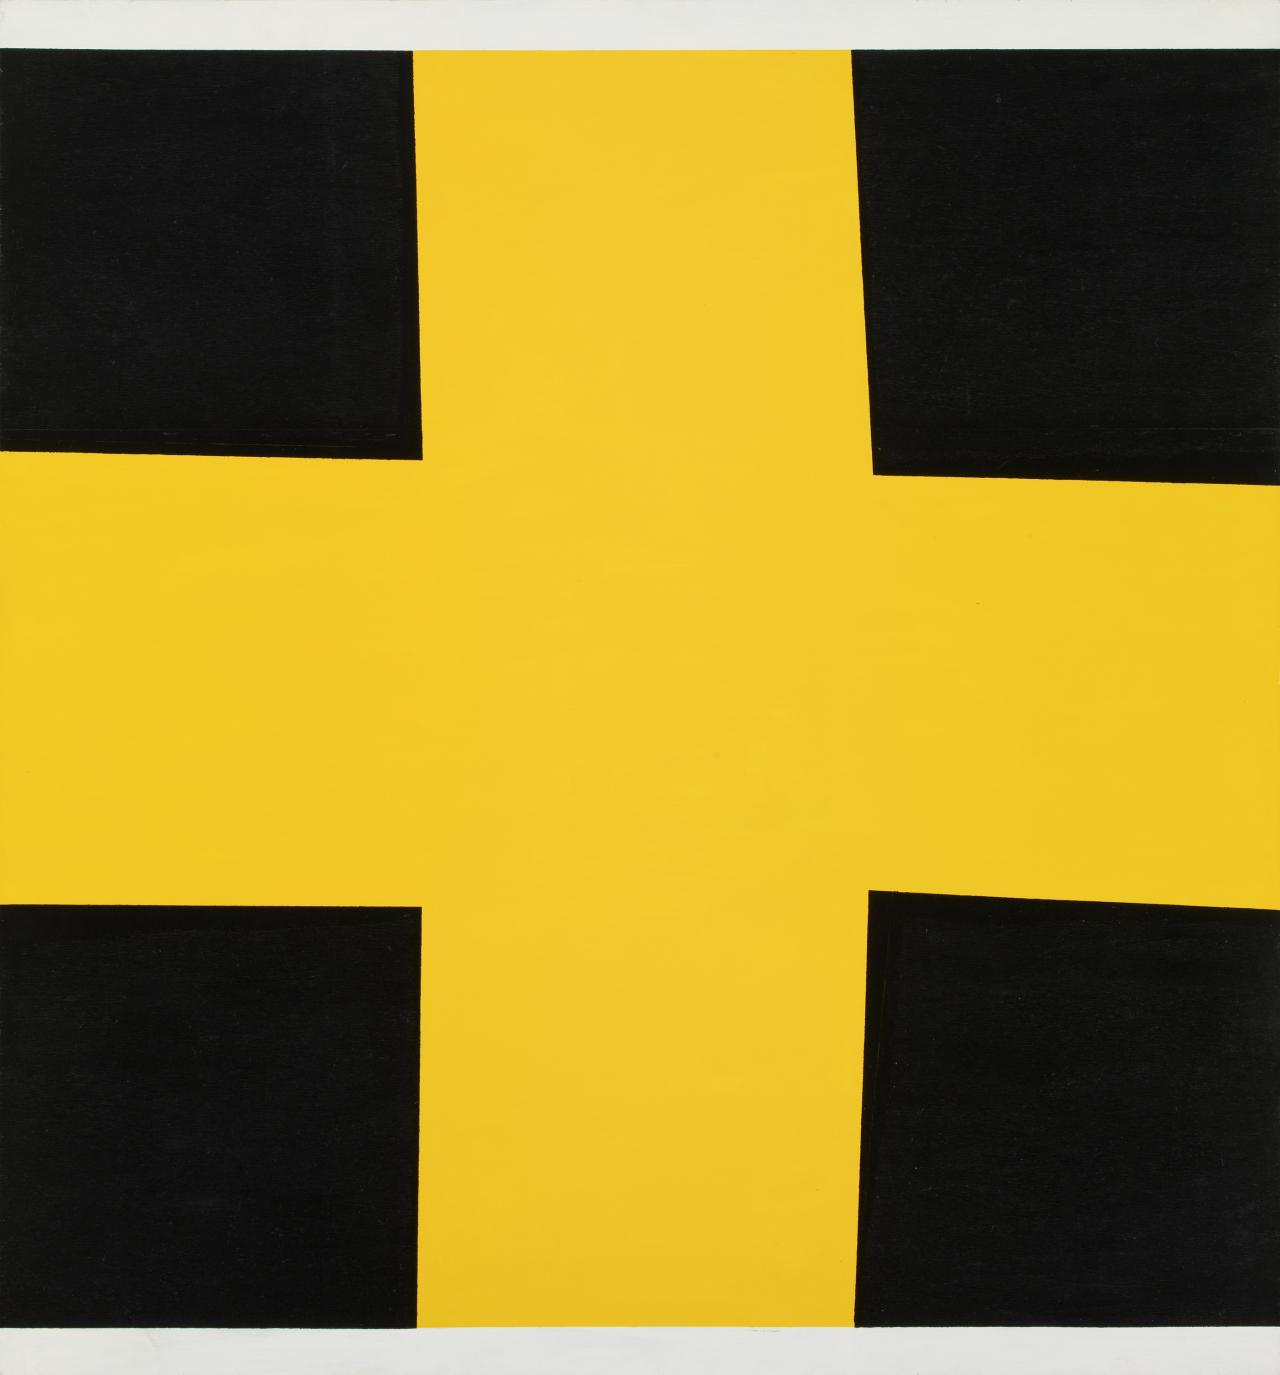 Self Portrait (non-objective composition) (yellow cross)